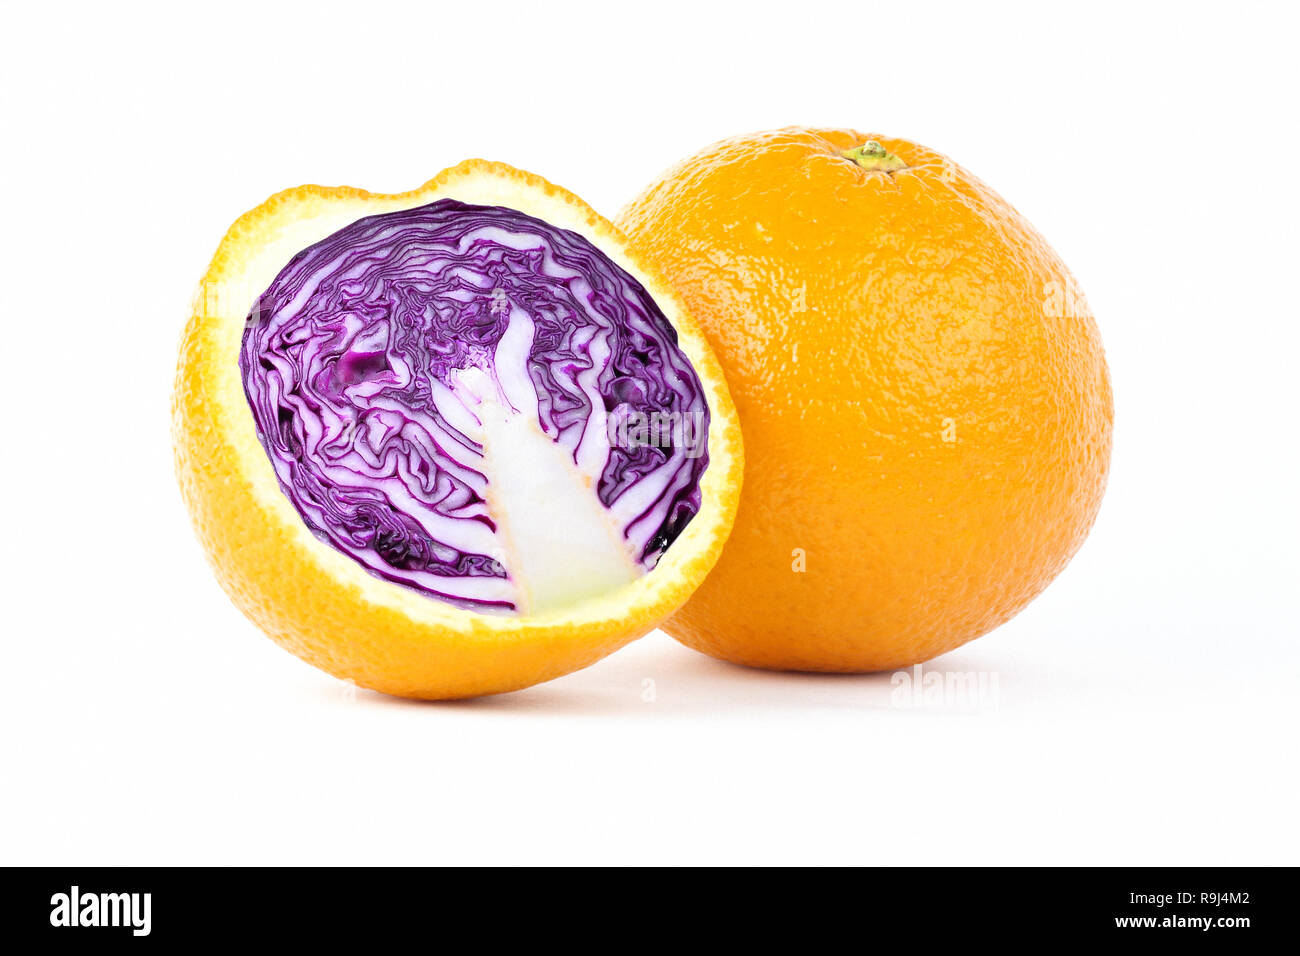 Creative photo manipulation of sliced orange with red cabbage inside isolated on white background - Stock Image